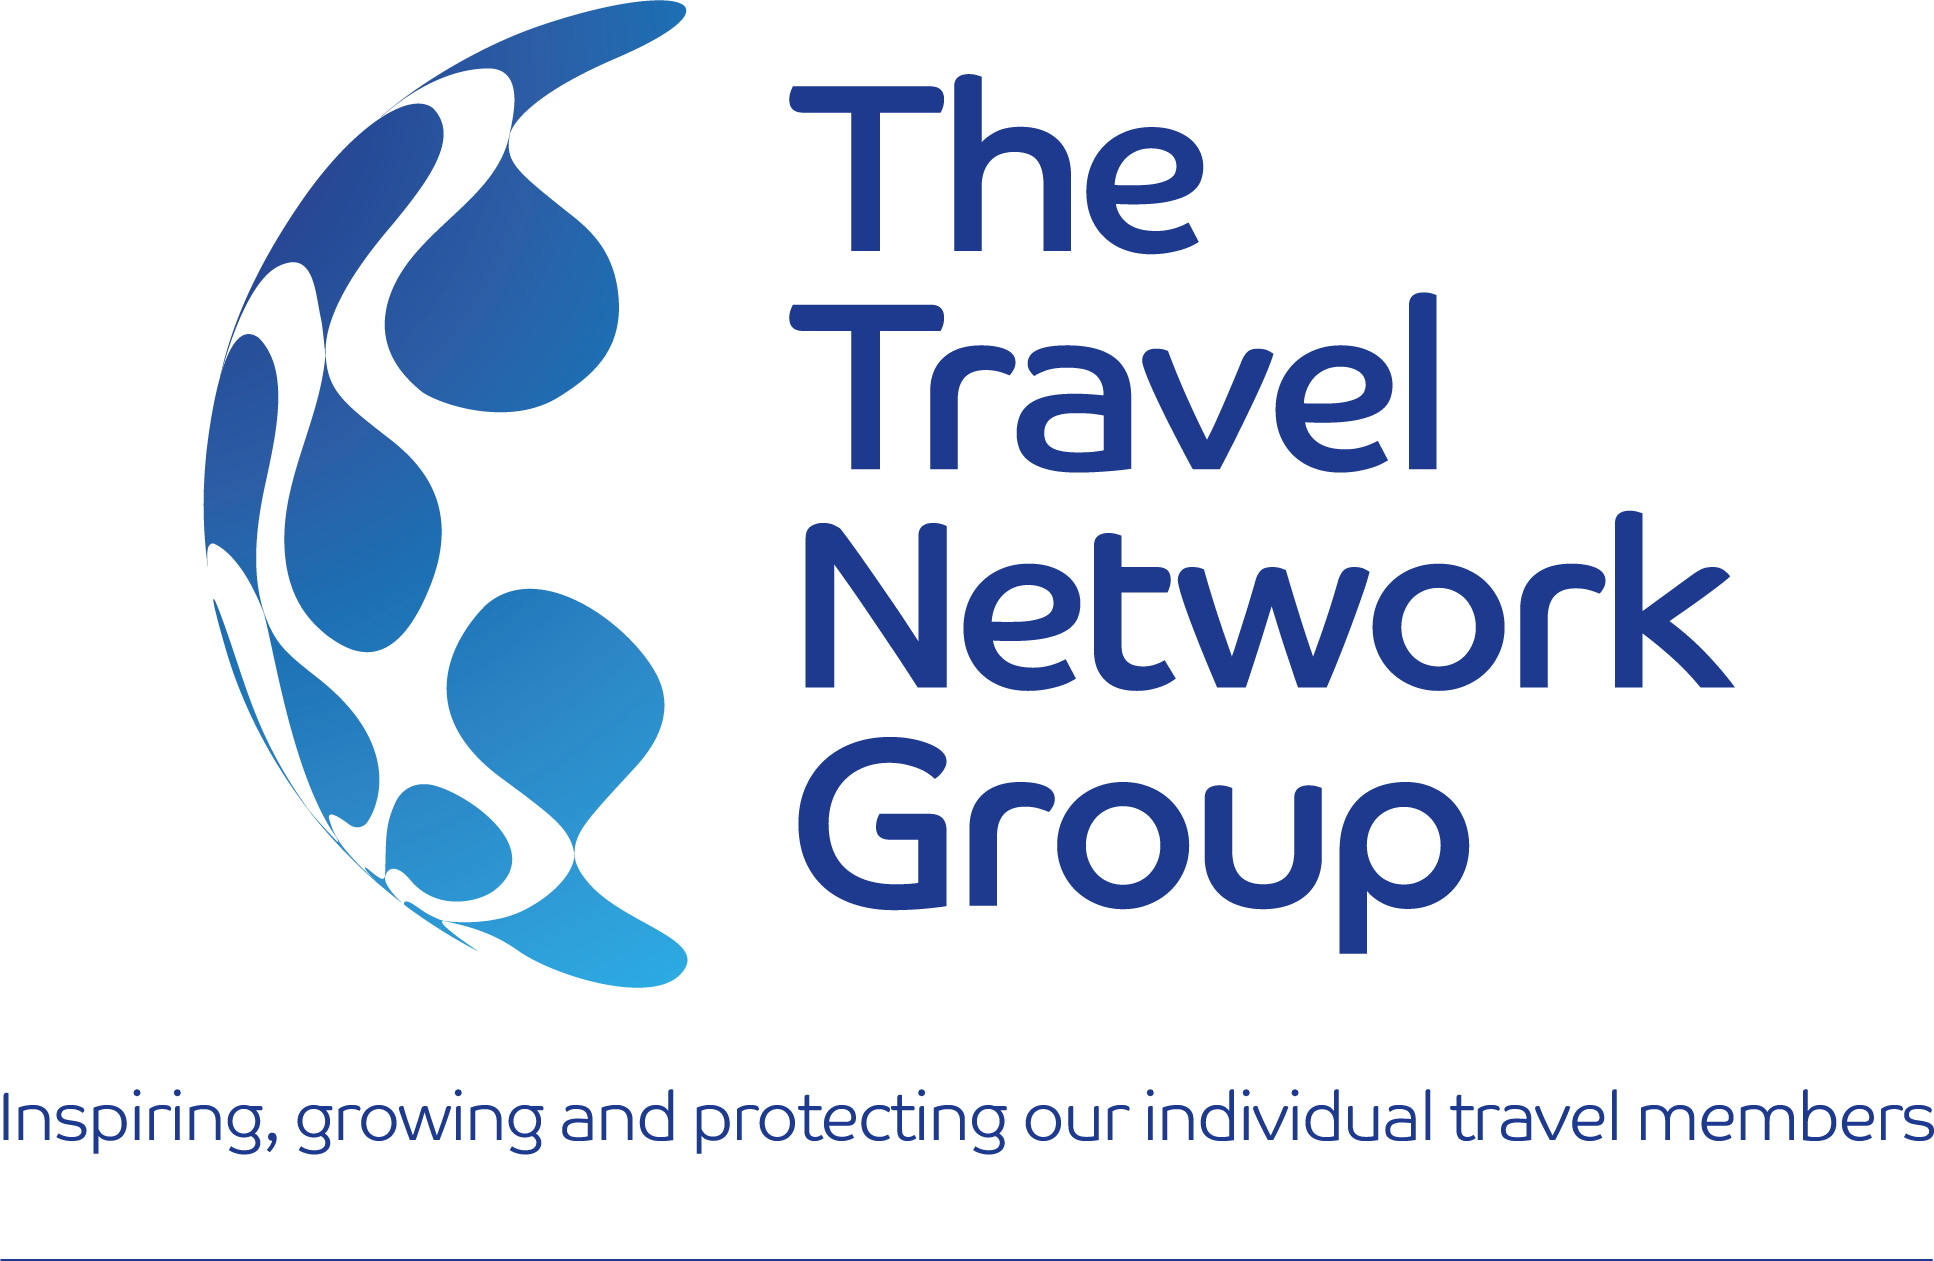 TheTravel Network Group